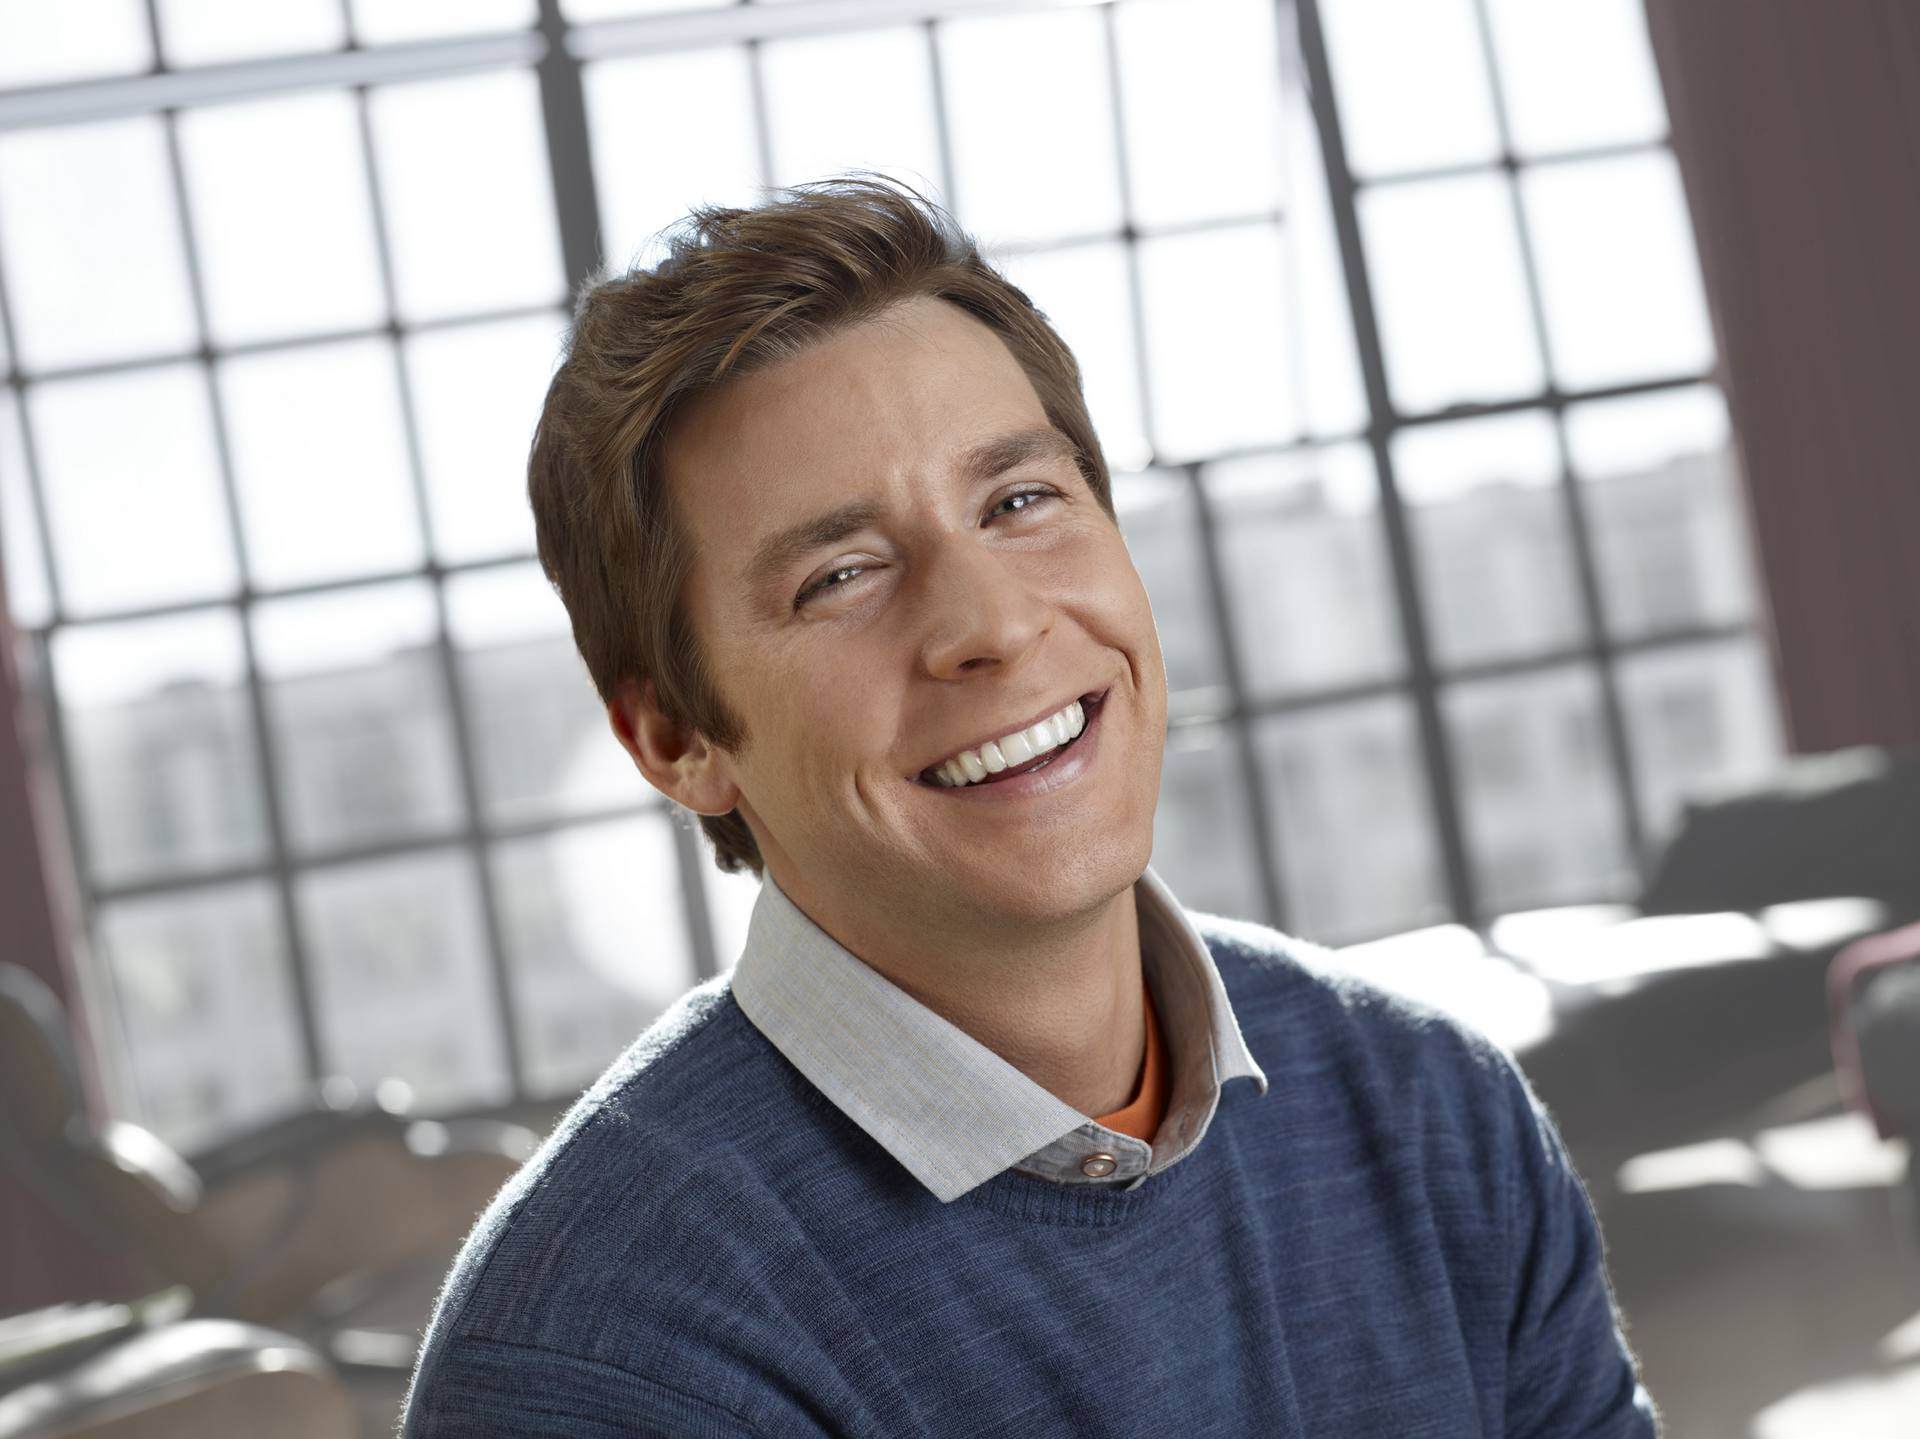 Young man smiling wearing invisalign